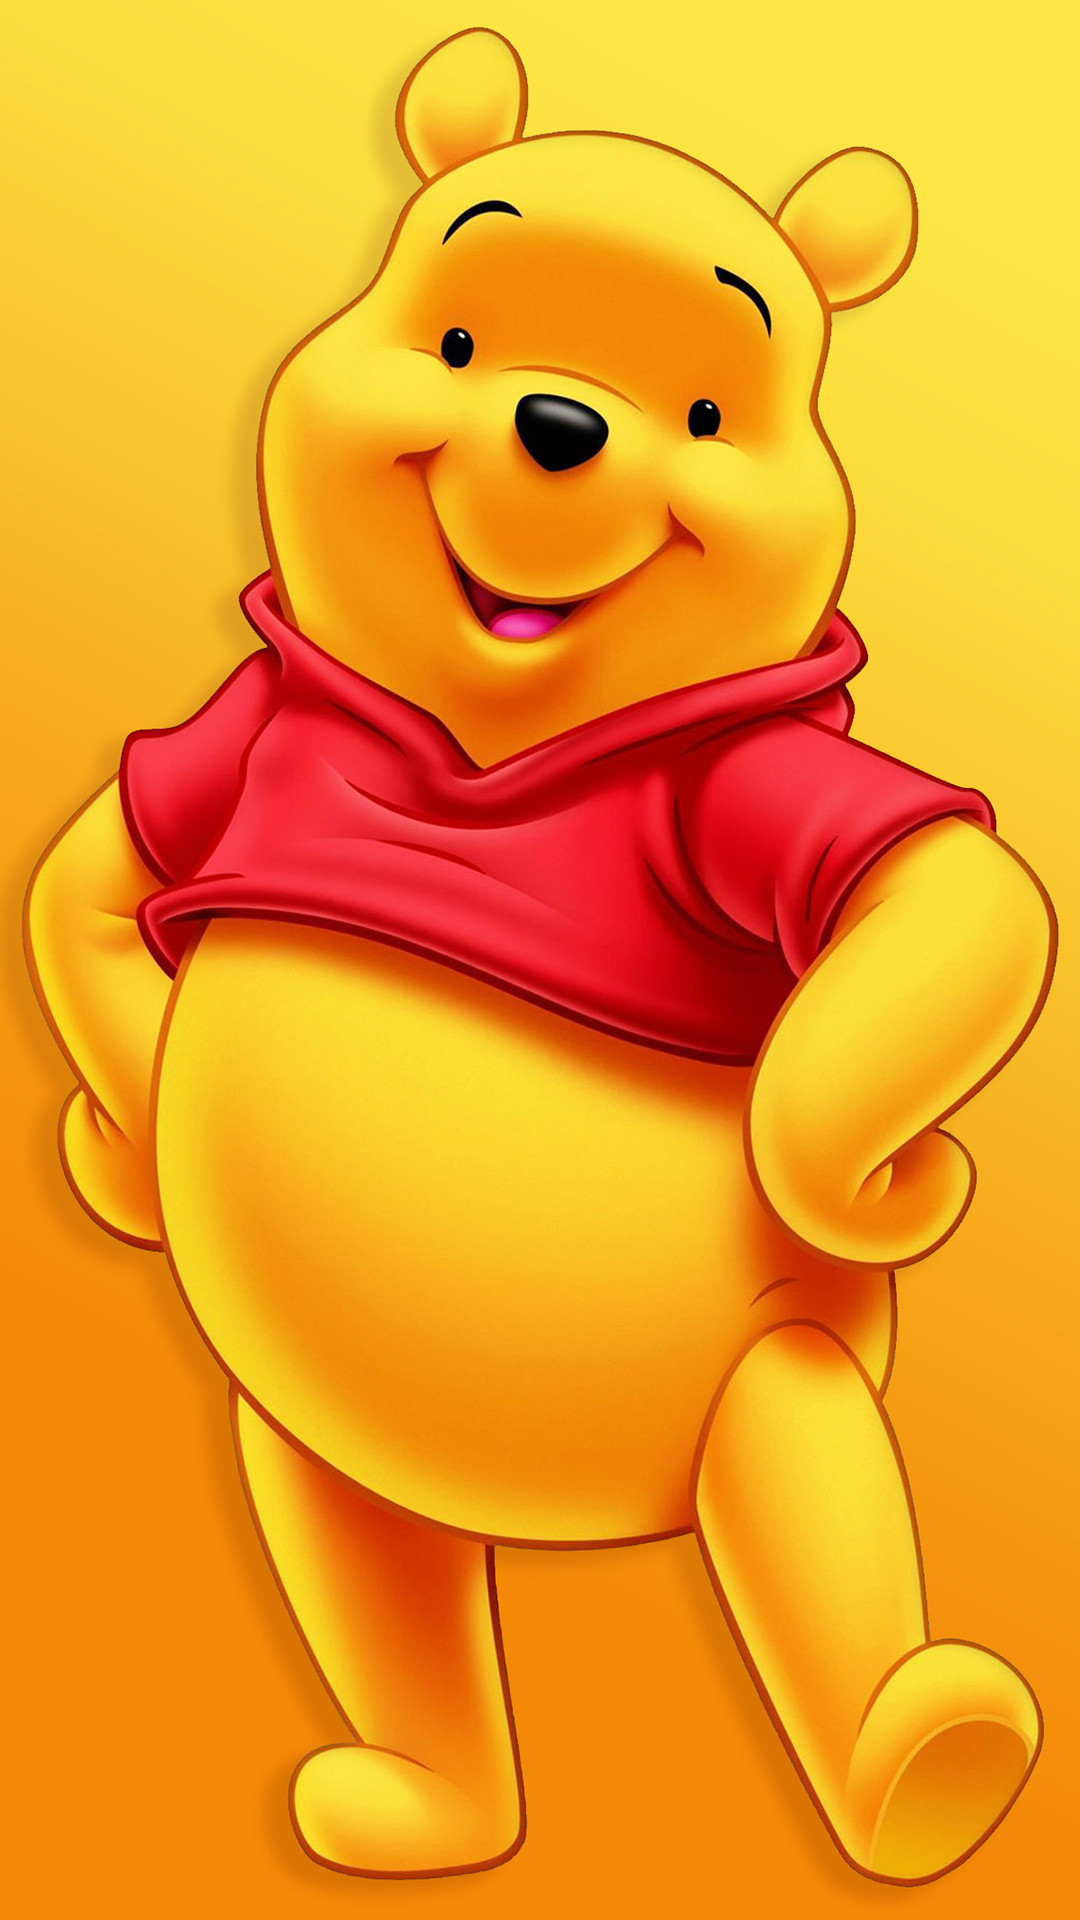 1080x1920 pooh bear wallpapers